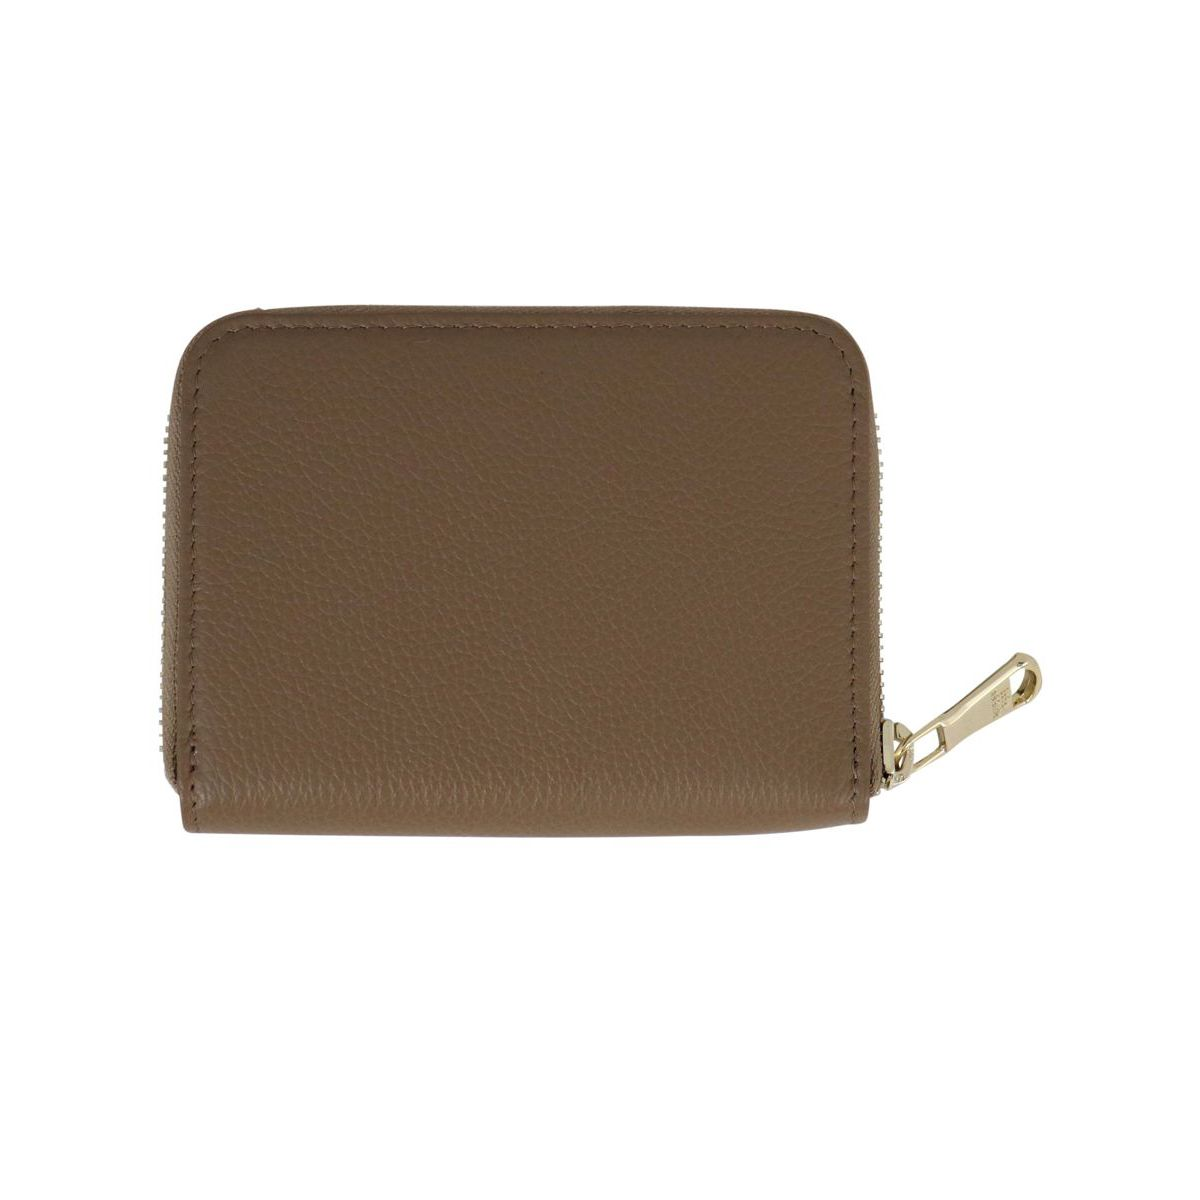 Textured leather wallet with logo Beige Patrizia Pepe